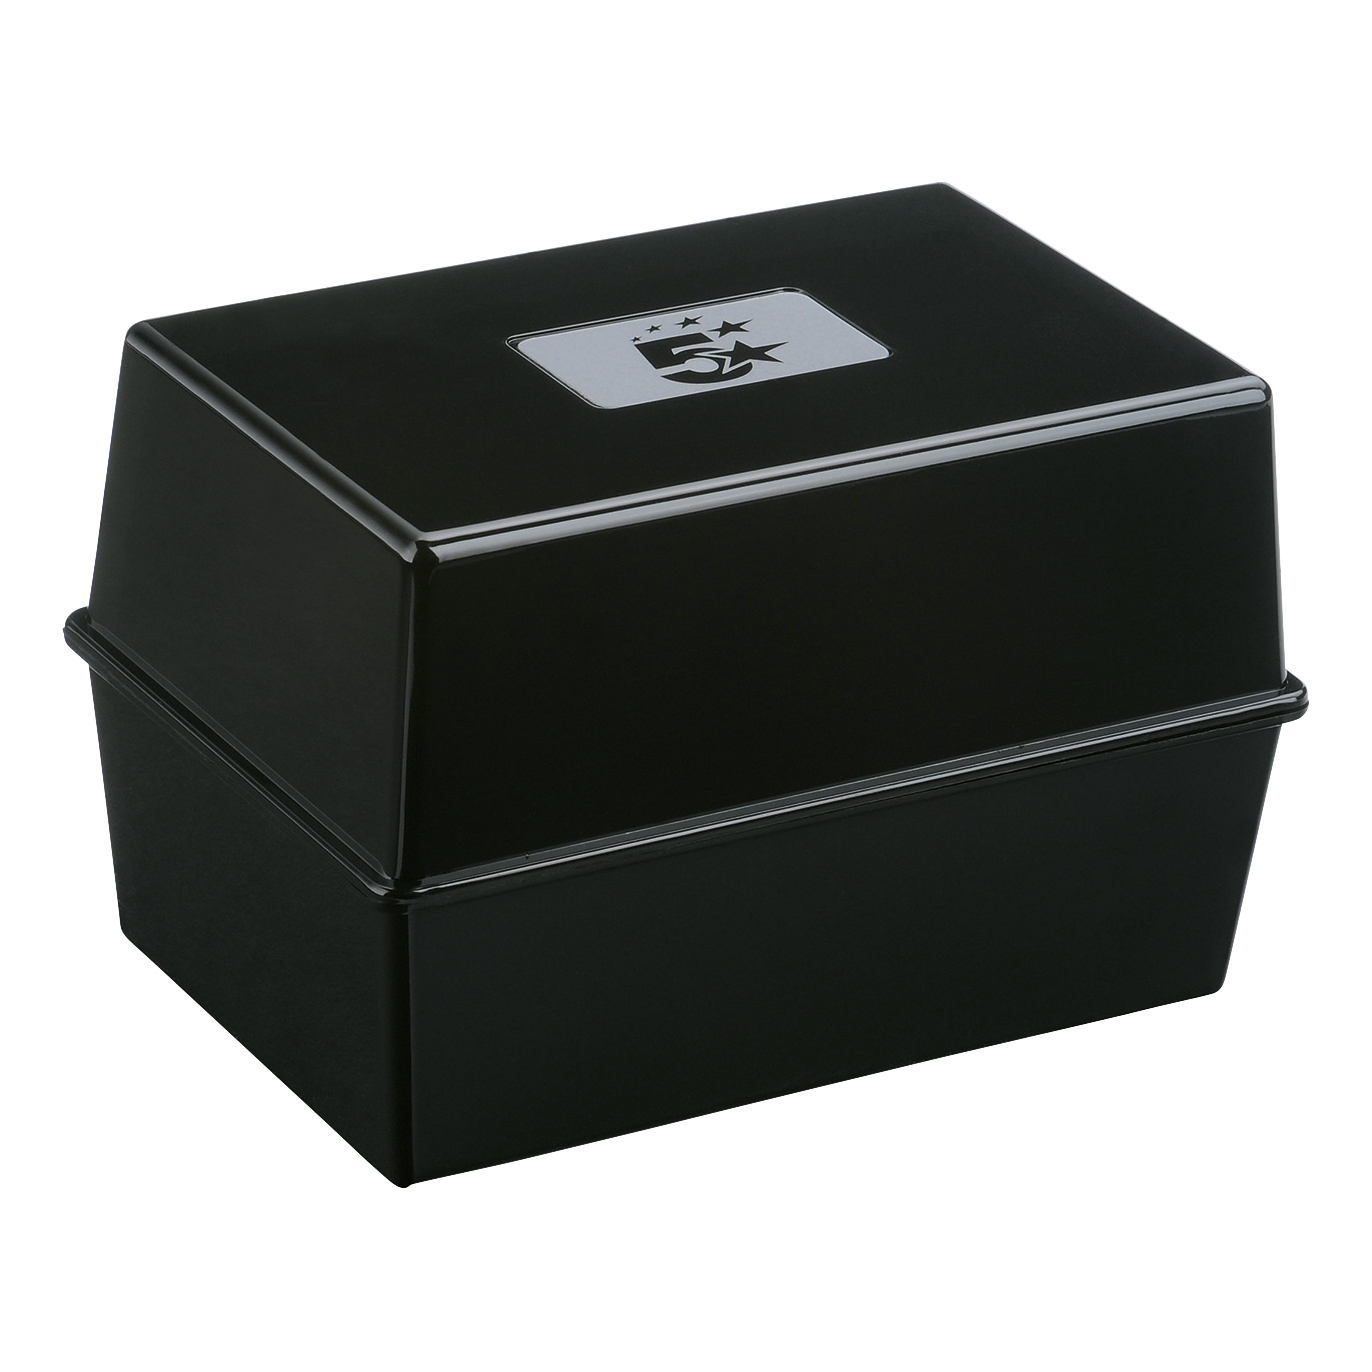 Storage 5 Star Office Card Index Box Capacity 250 Cards 8x5in 203x127mm Black